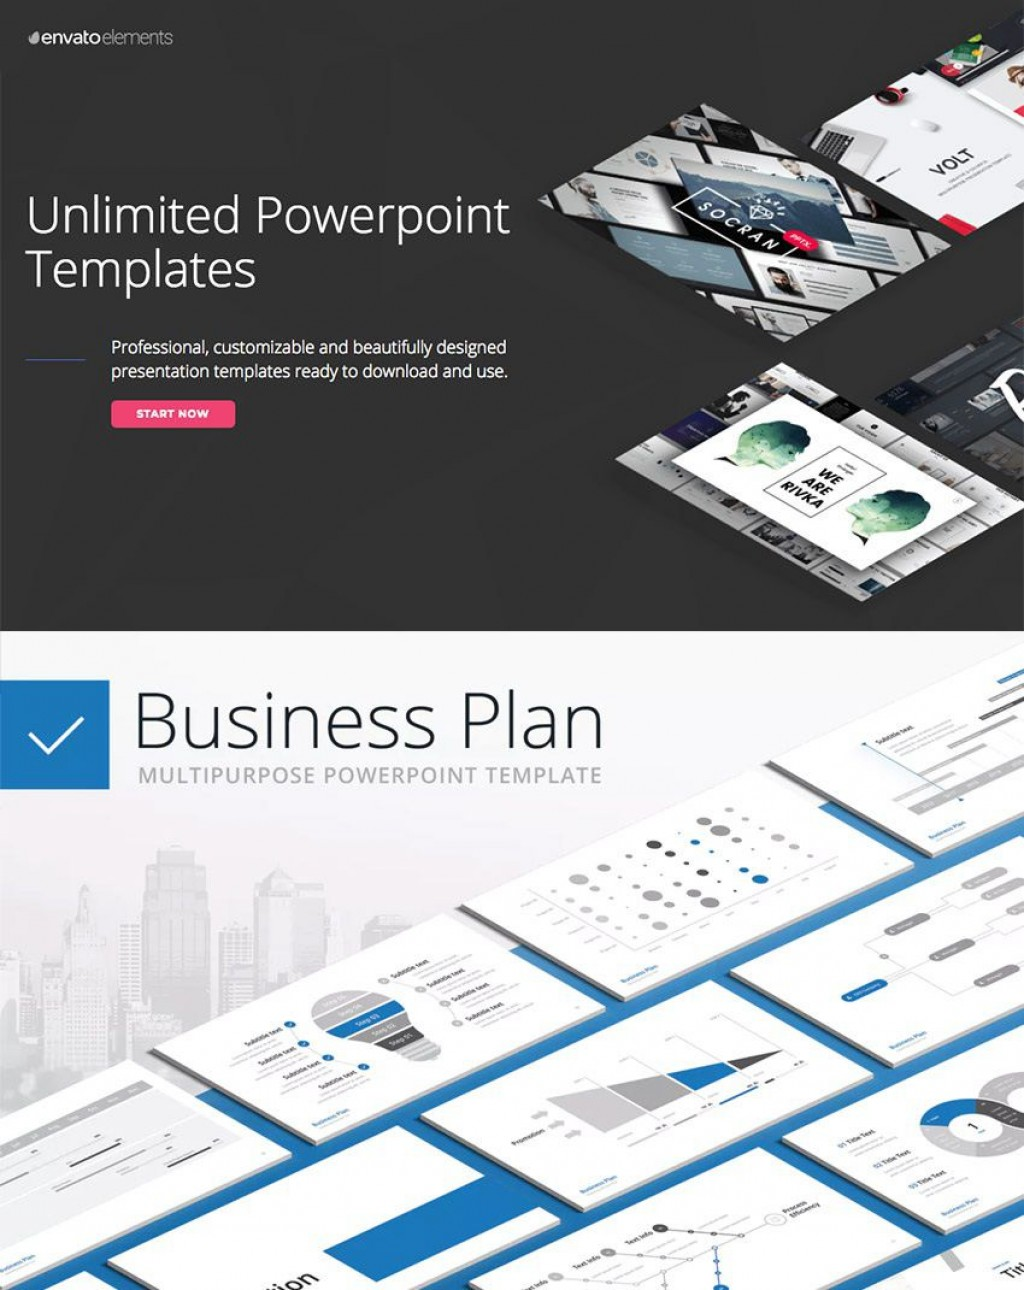 008 Magnificent Best Busines Plan Template Highest Quality  Ppt Free DownloadLarge